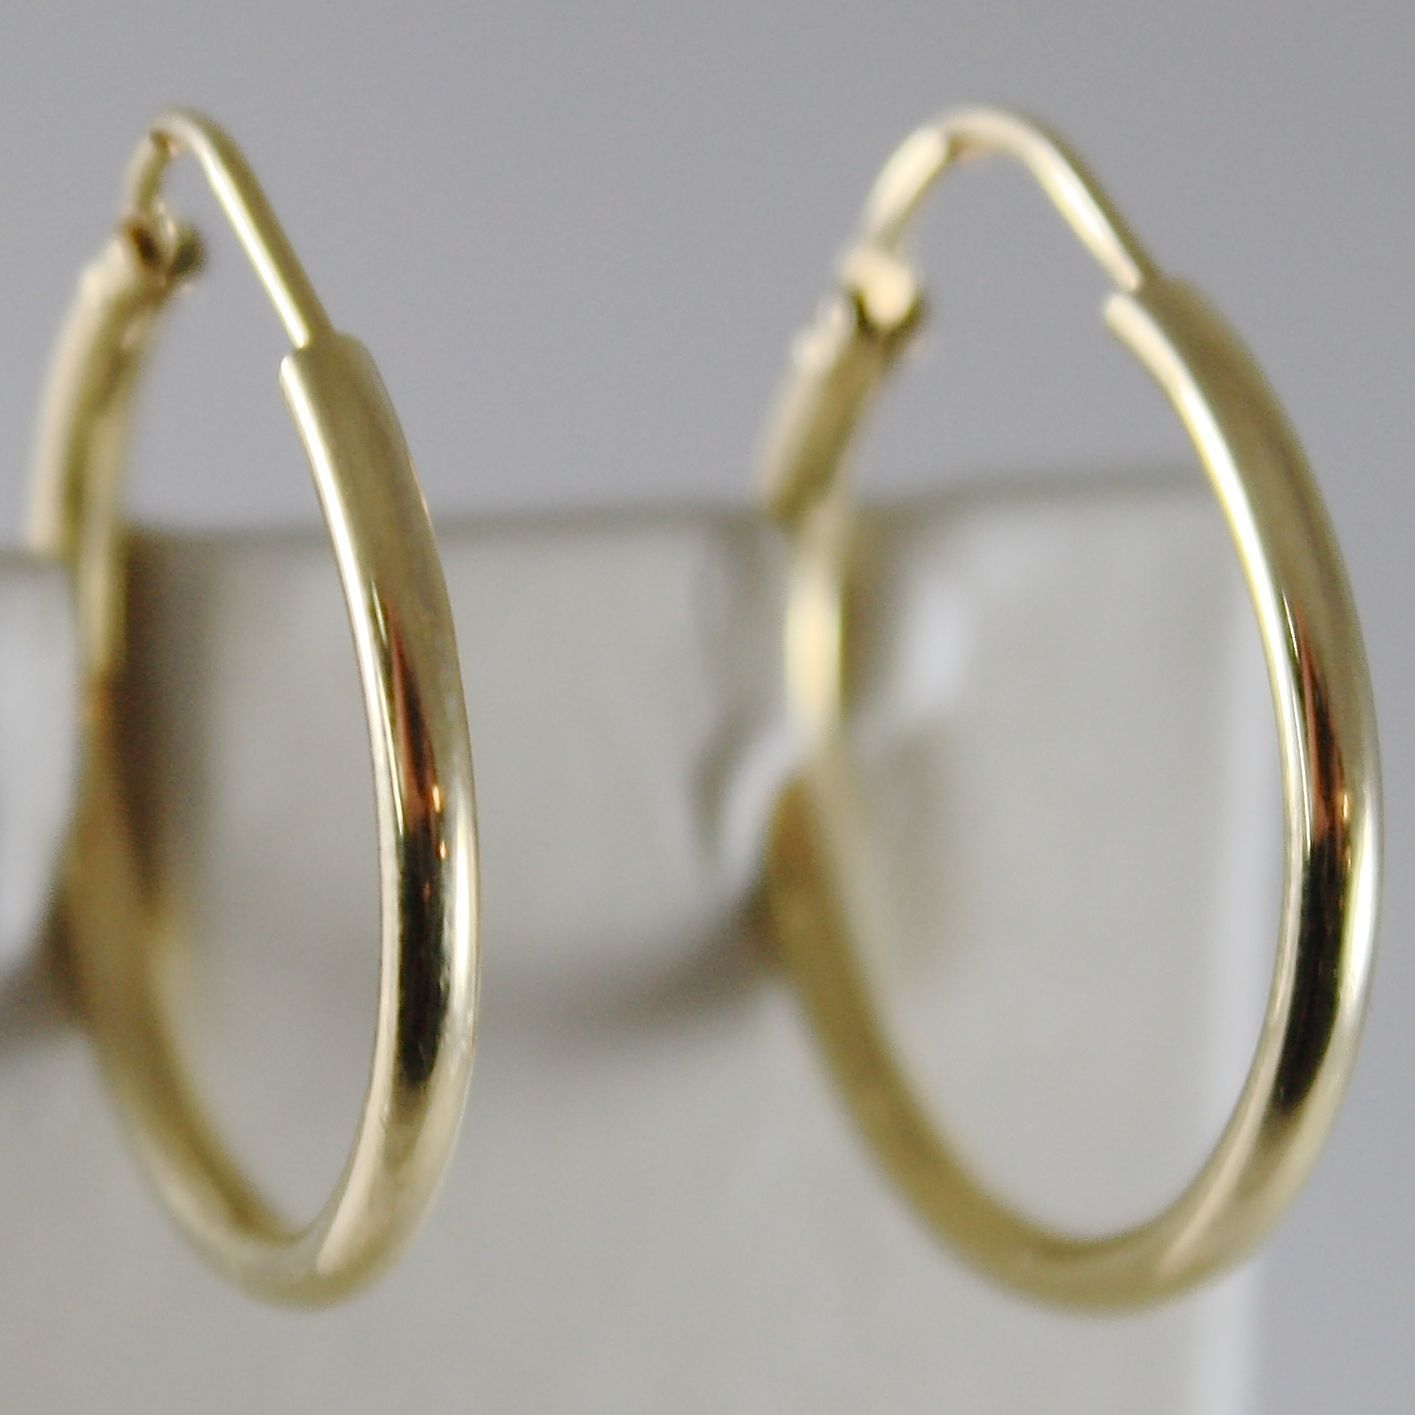 18K YELLOW GOLD EARRINGS CIRCLE HOOP 22 MM 0.87 INCHES DIAMETER MADE IN ITALY